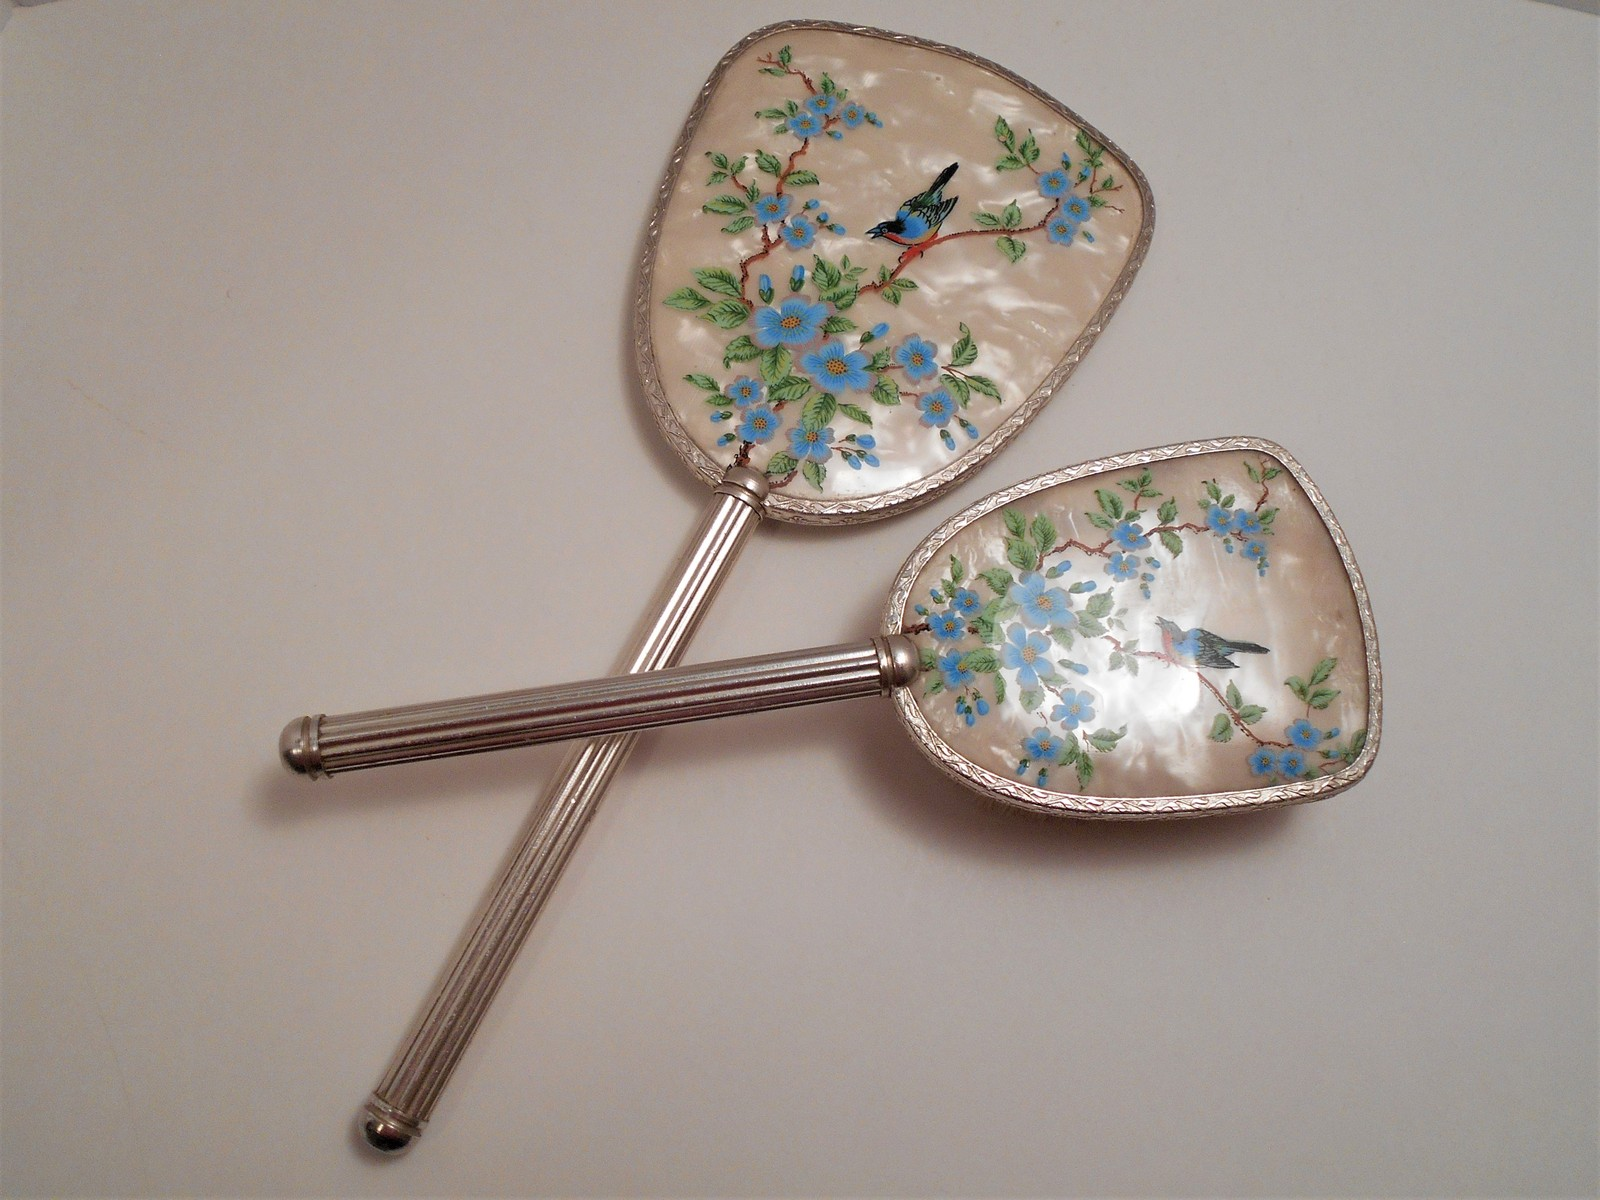 Vintage Bird Picture Hand Mirror & Brush Made in England image 7